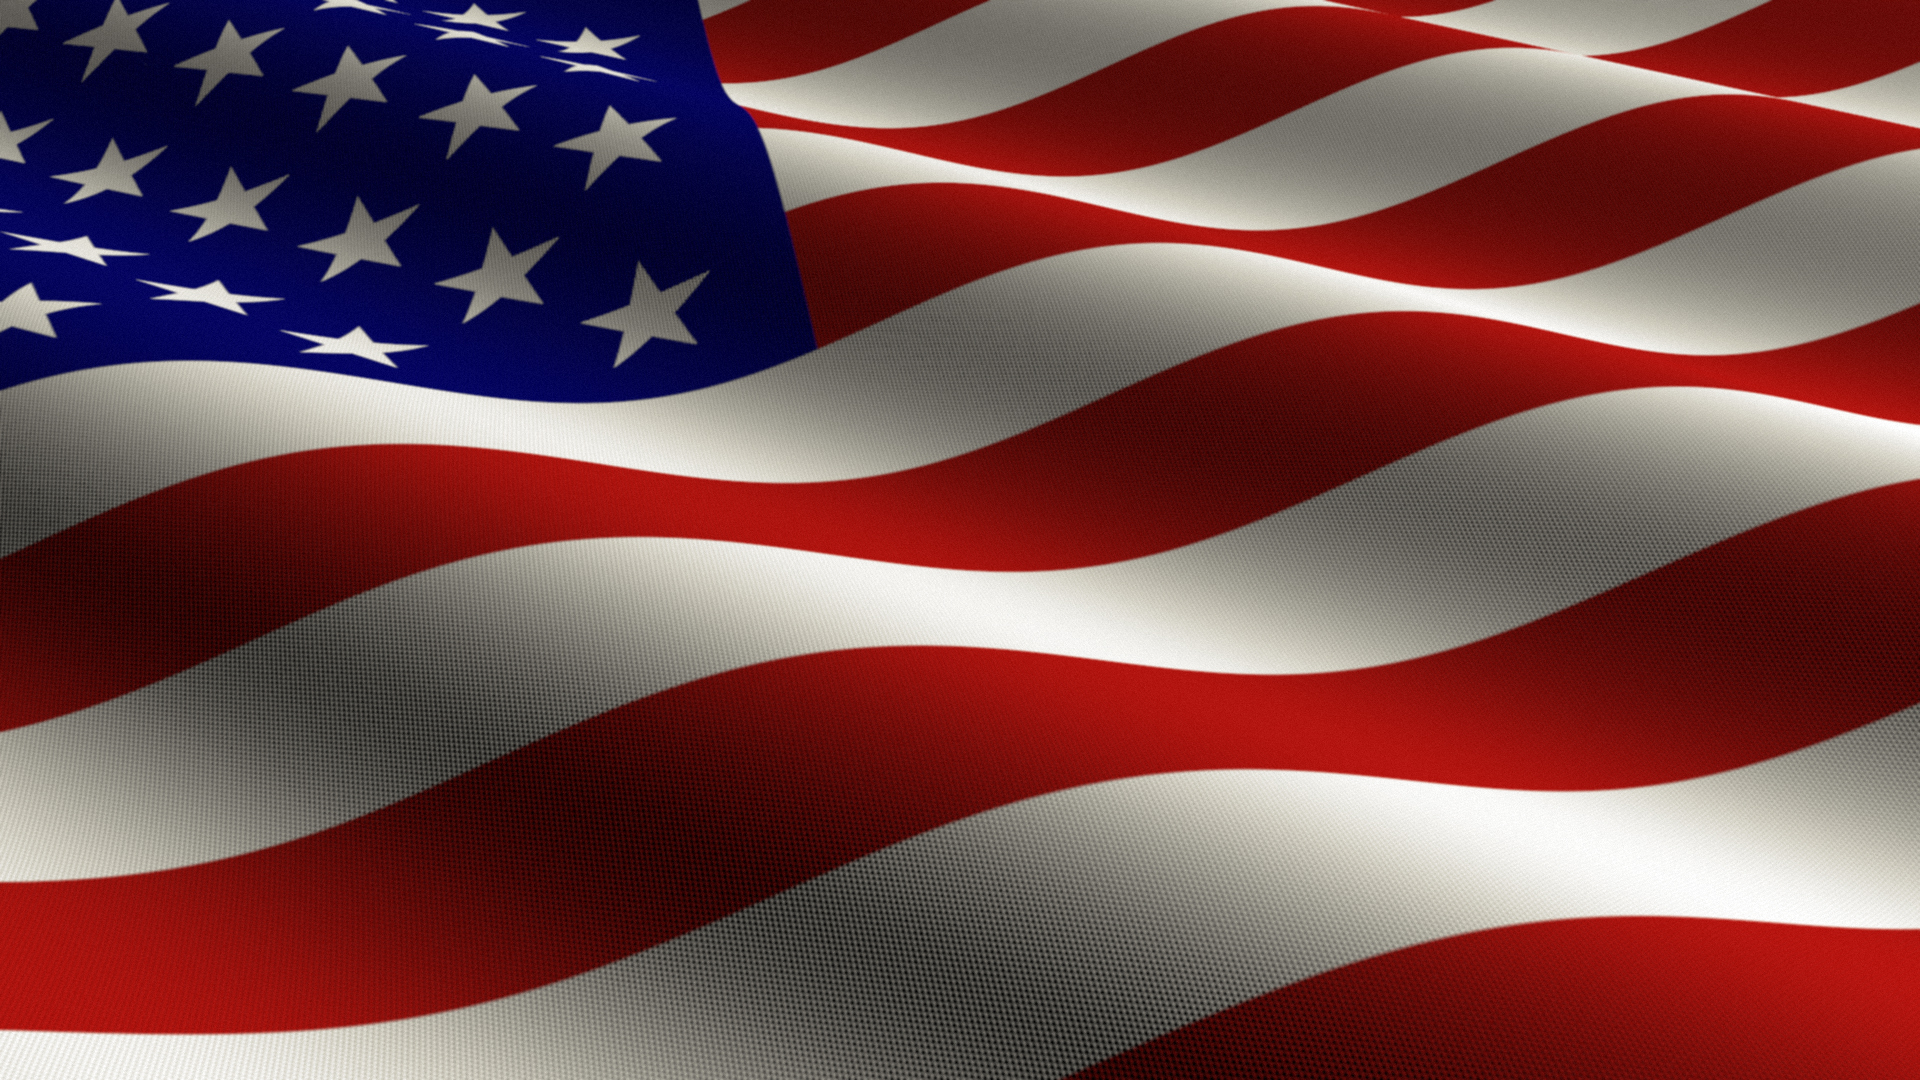 Free download American Flag Download Clip Art Clip Art on.